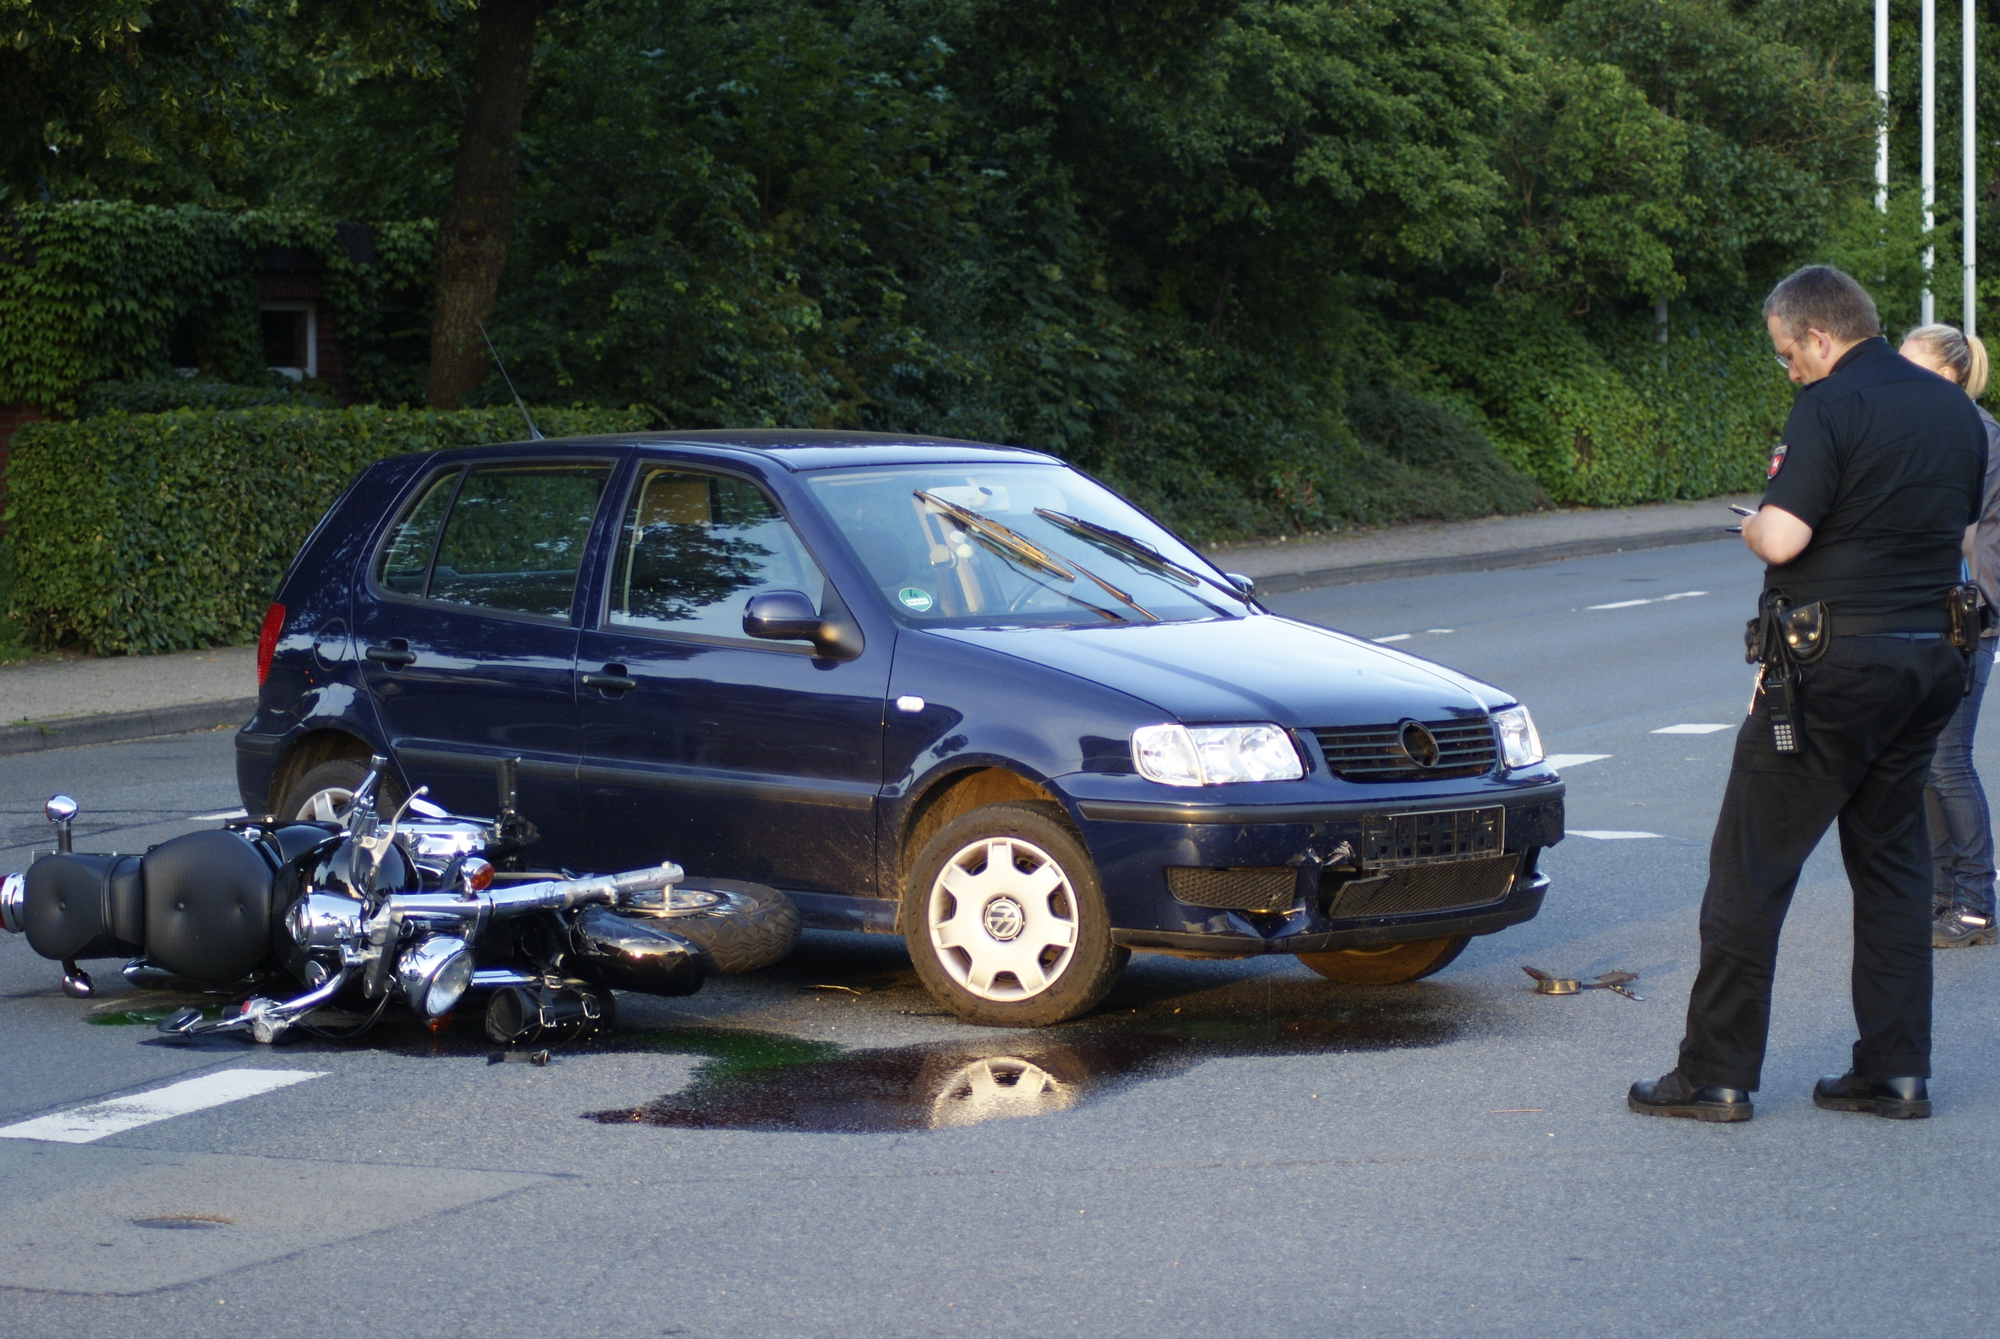 How to Protect Yourself in a Motorcycle Accident - Law